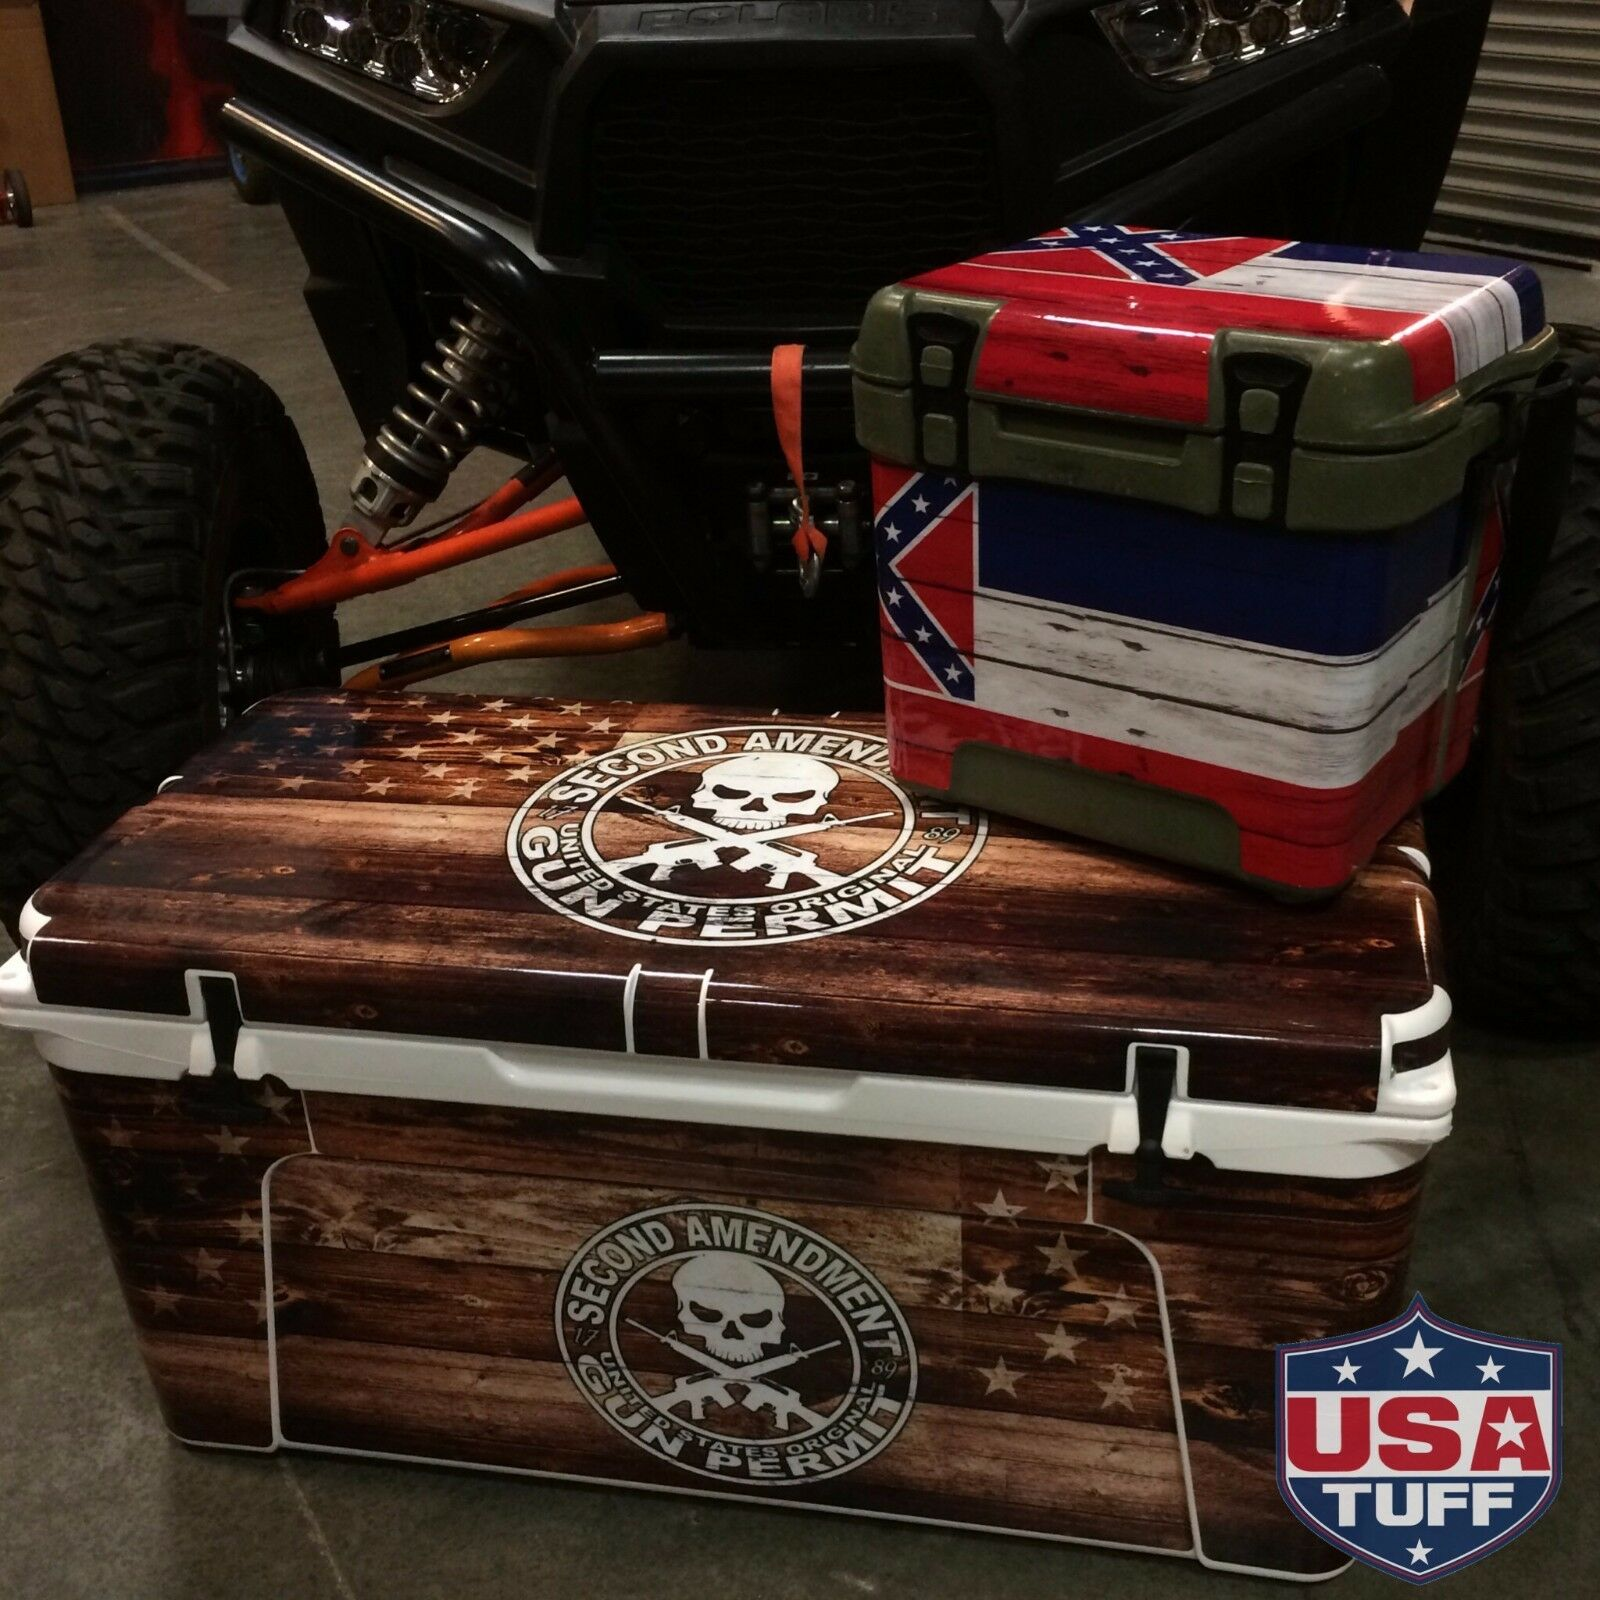 USATuff Custom Cooler Decal Wrap Wrap Wrap fits YETI Tundra 75qt L+I Pirates Lighthouse 72b3d7